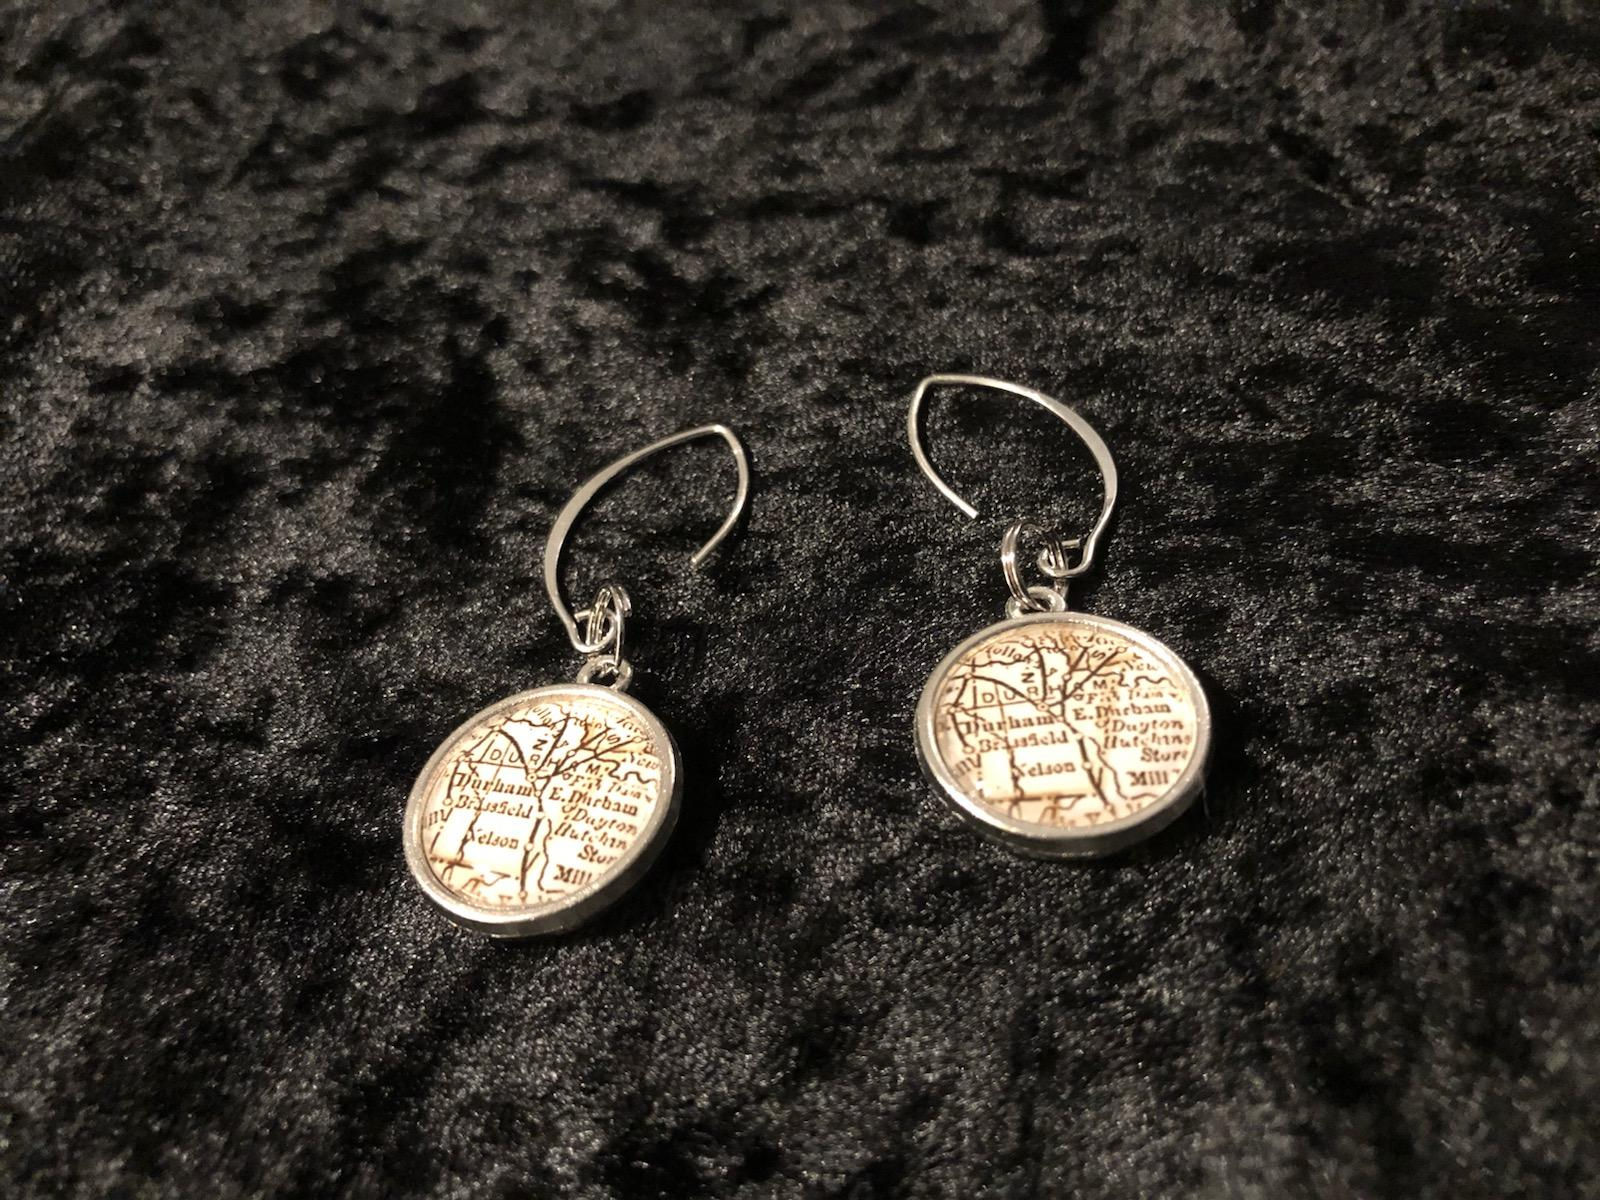 Durham (Adshusheer) Map Earrings